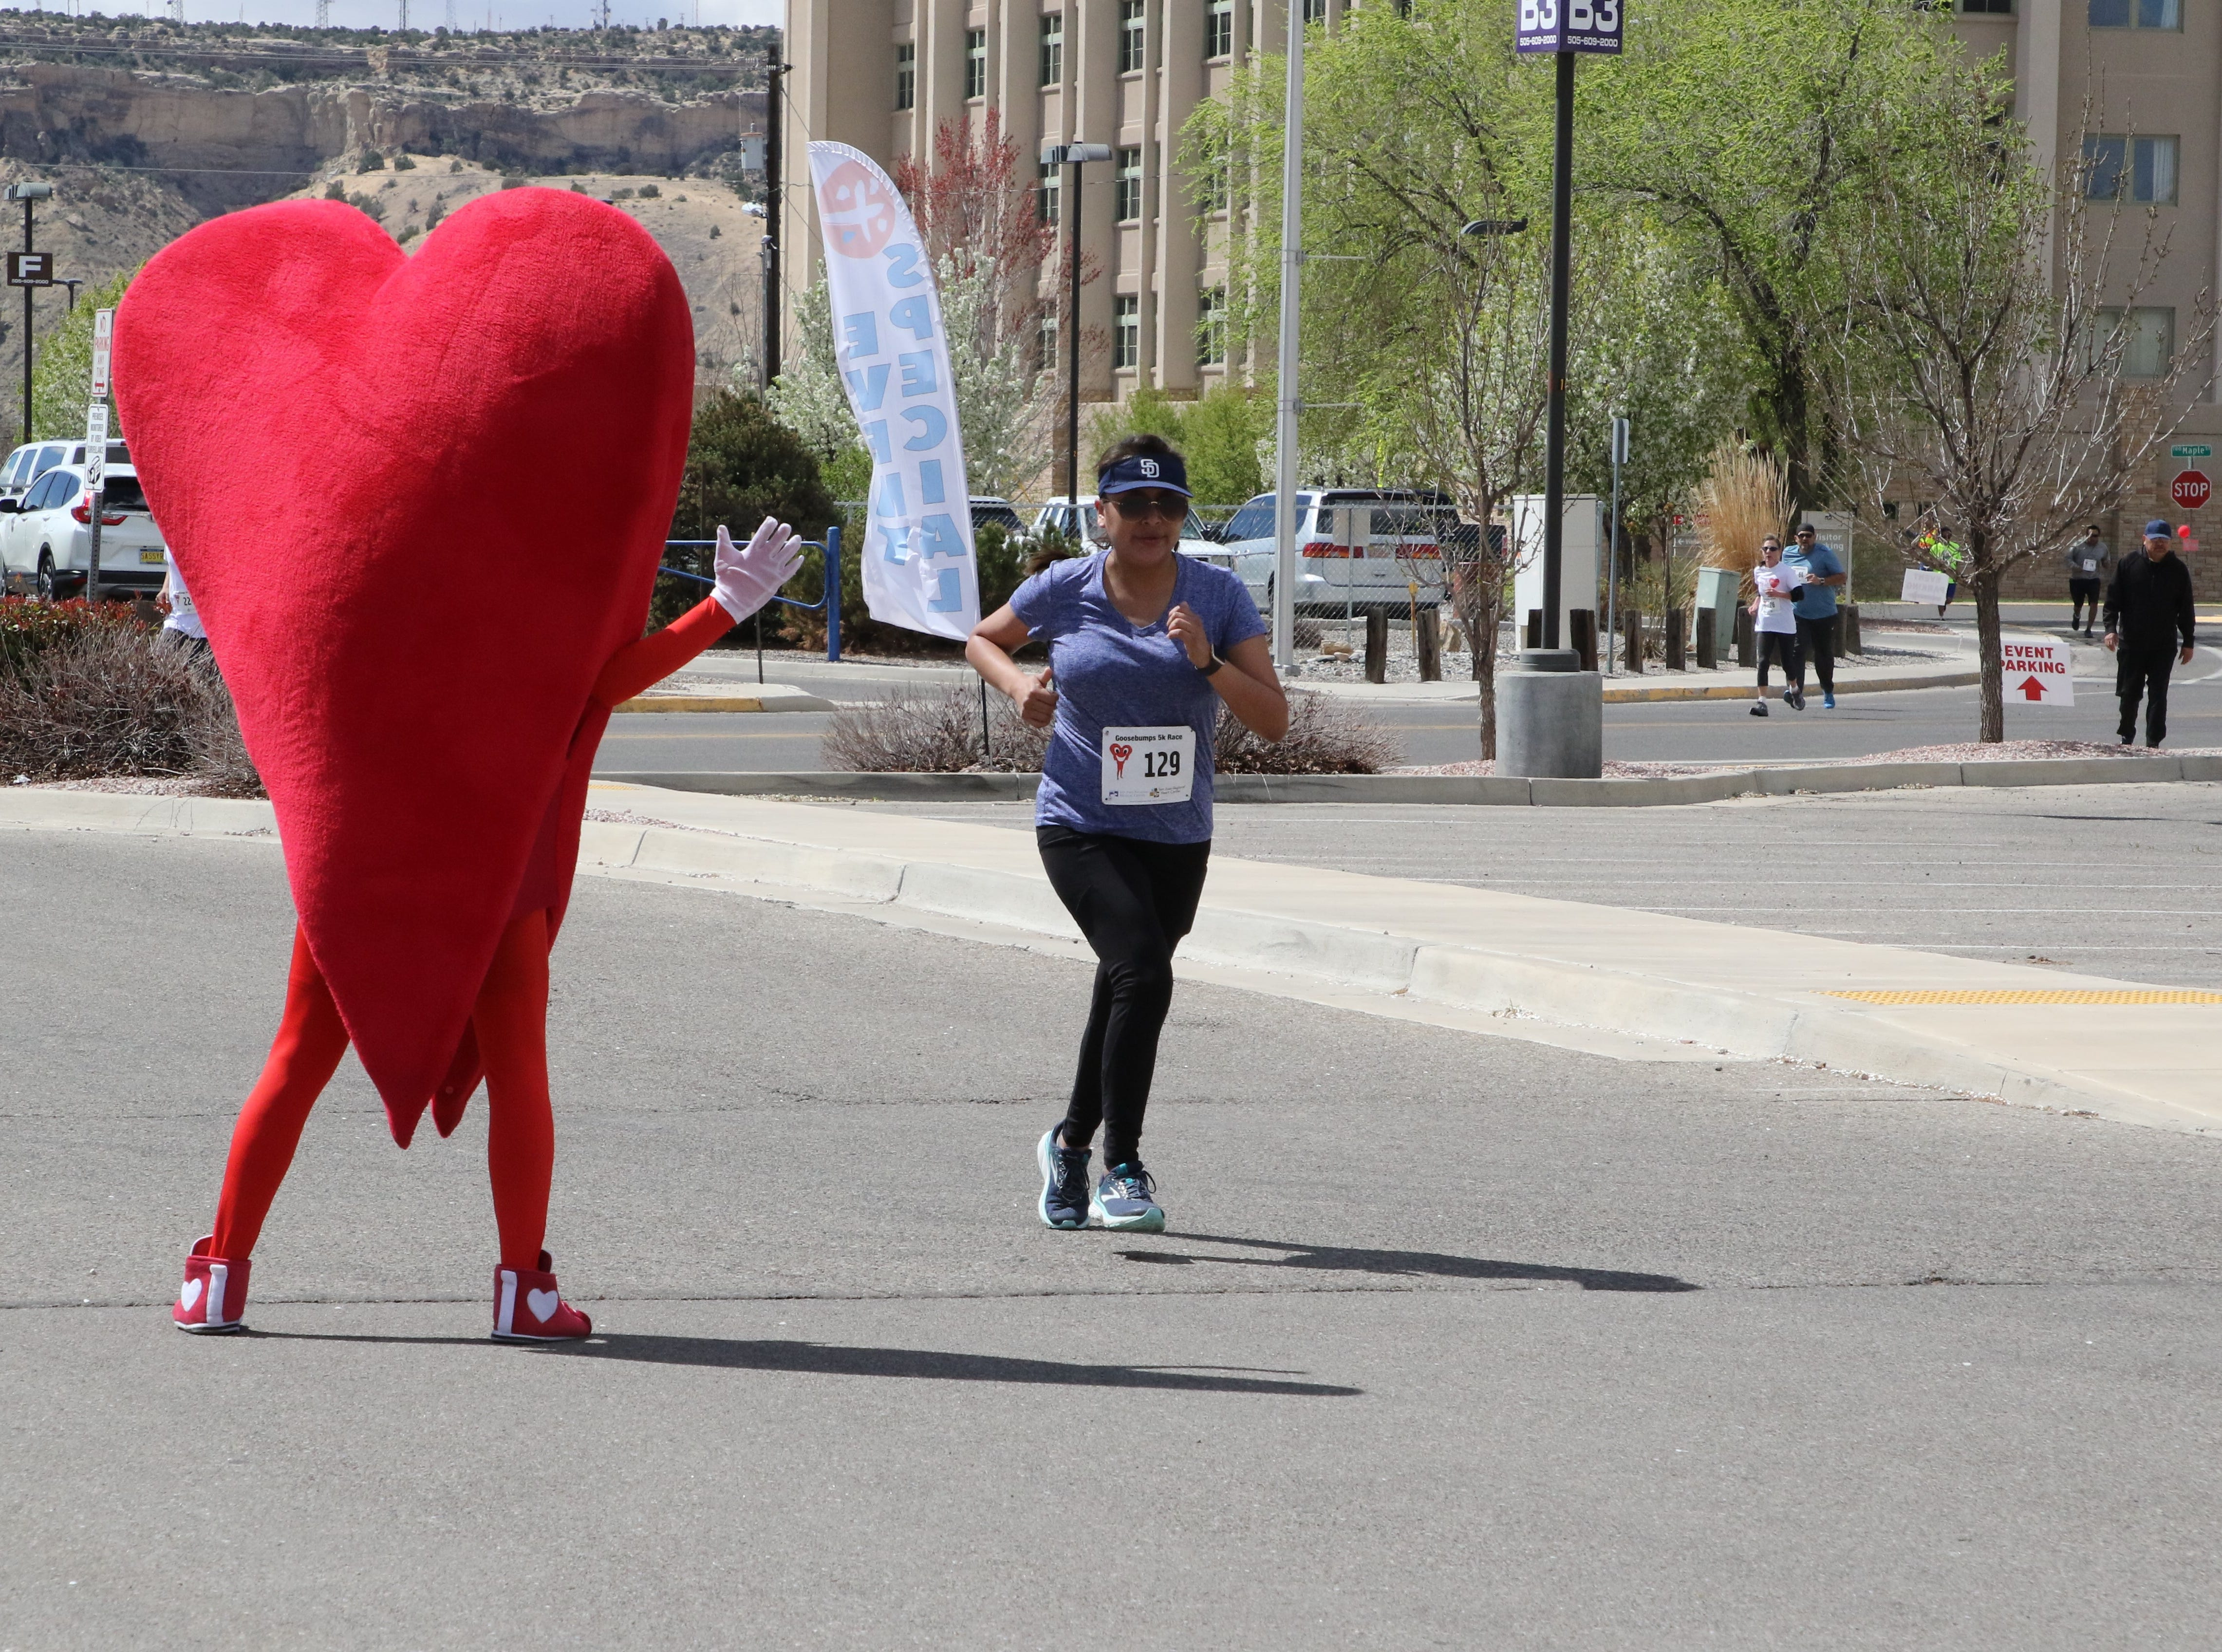 A runner passes Mr. Juan Hart, the San Juan Regional Heart Center's mascot, during the 11th annual A Fair of the Heart and Goosebump Race on Saturday in Farmington.